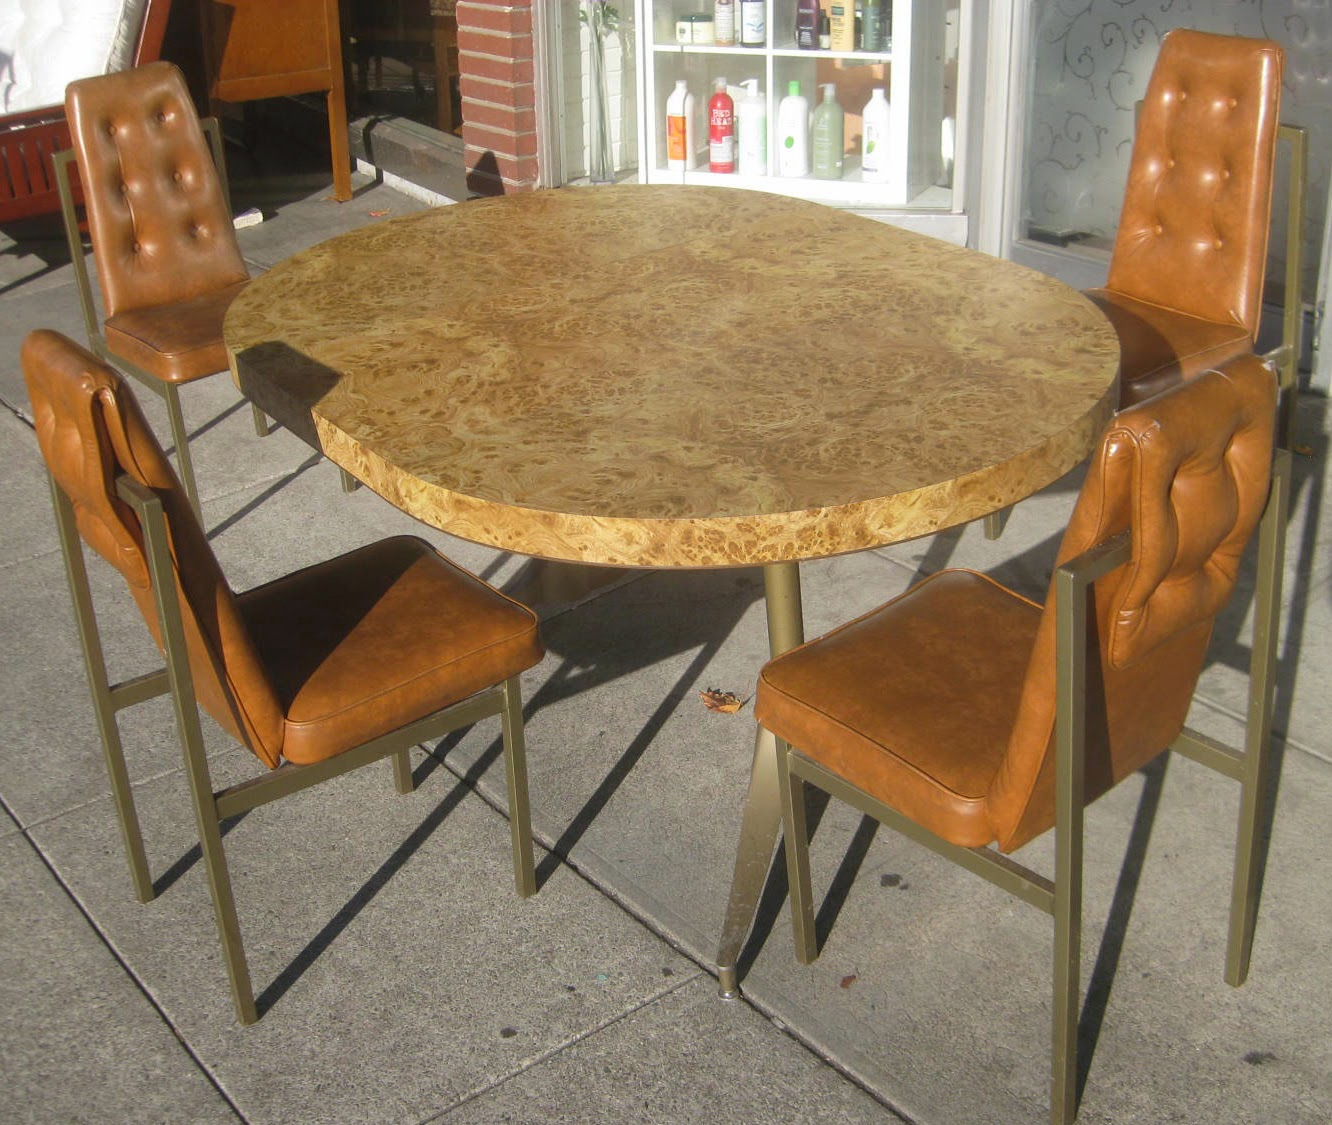 Uhuru furniture collectibles sold retro kitchen table for Retro kitchen table and chairs